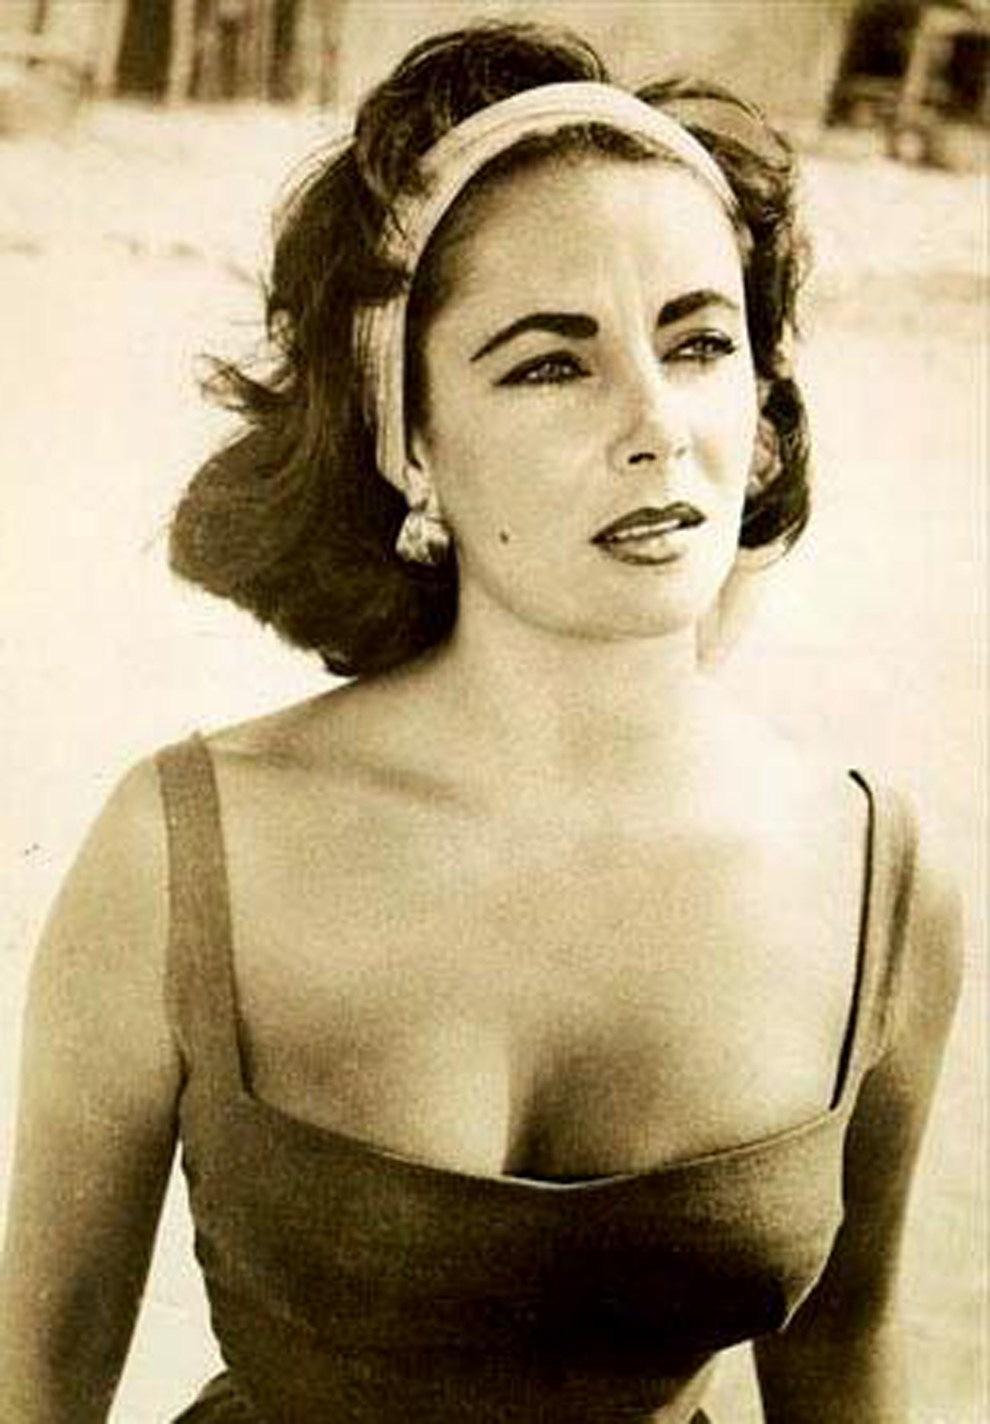 33. USA, Hollywood, data nieznana: Portret Elizabeth Taylor, która zmarła w Los Angeles w wieku 79 lat. AFP PHOTO / Files